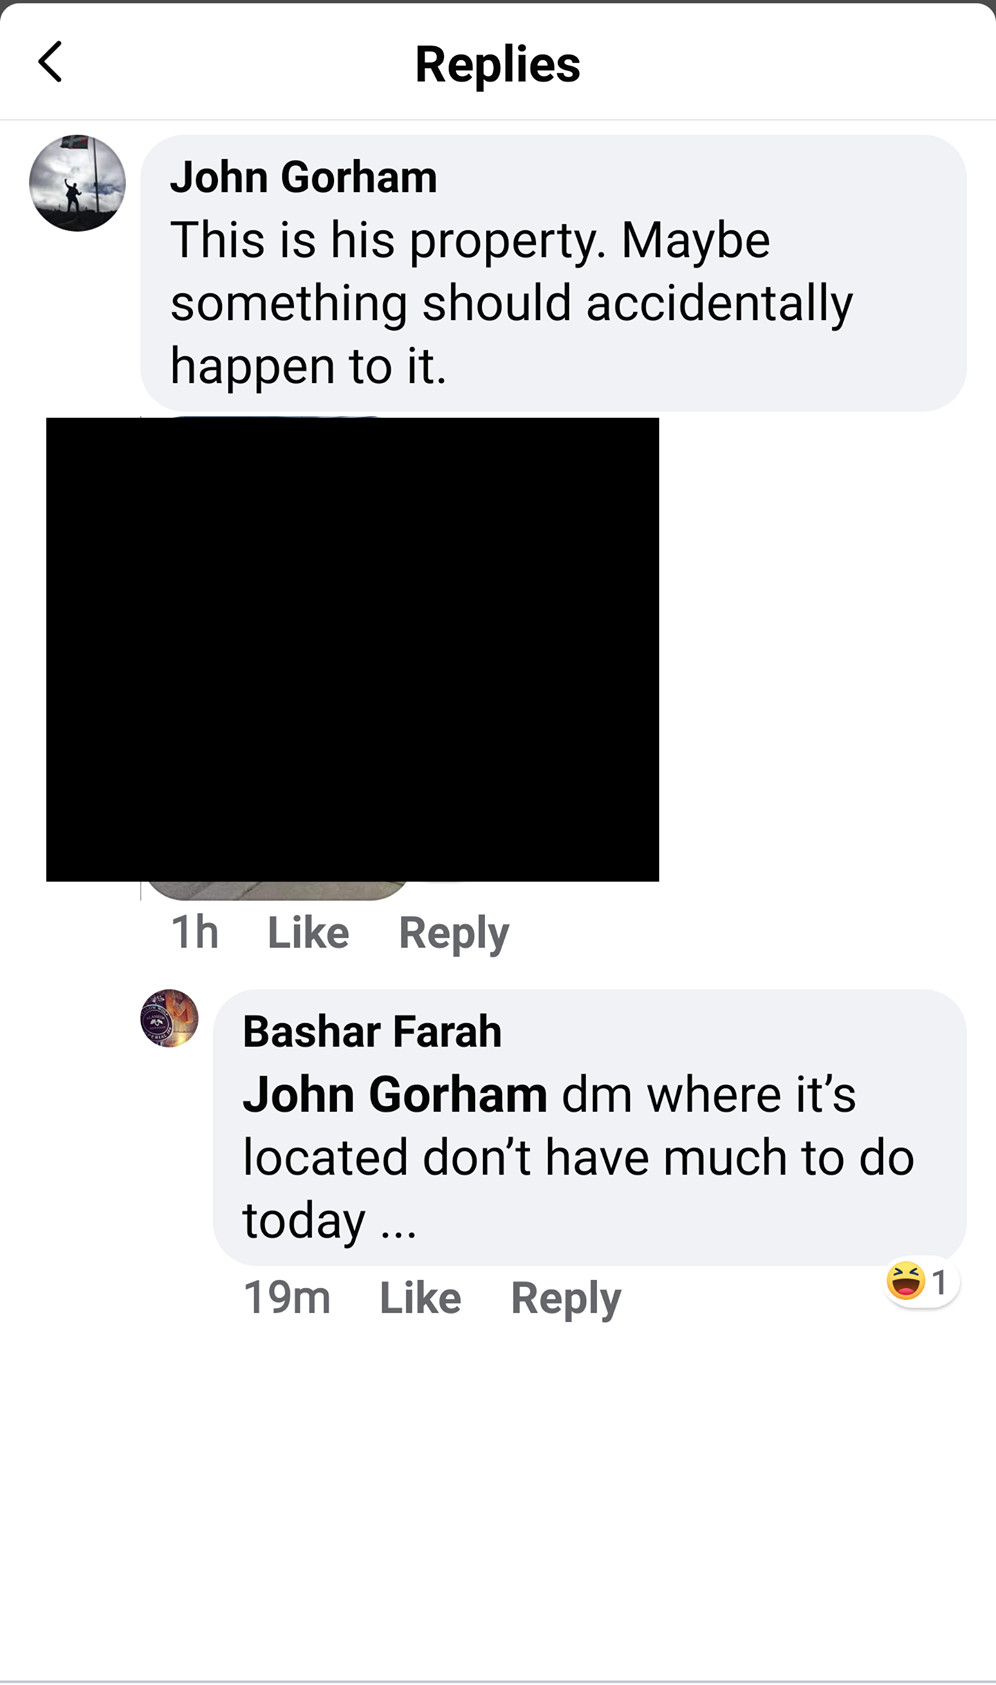 """In a Facebook comment, John Gorham writes, """"This is his property. Maybe something should accidentally happen to it."""""""